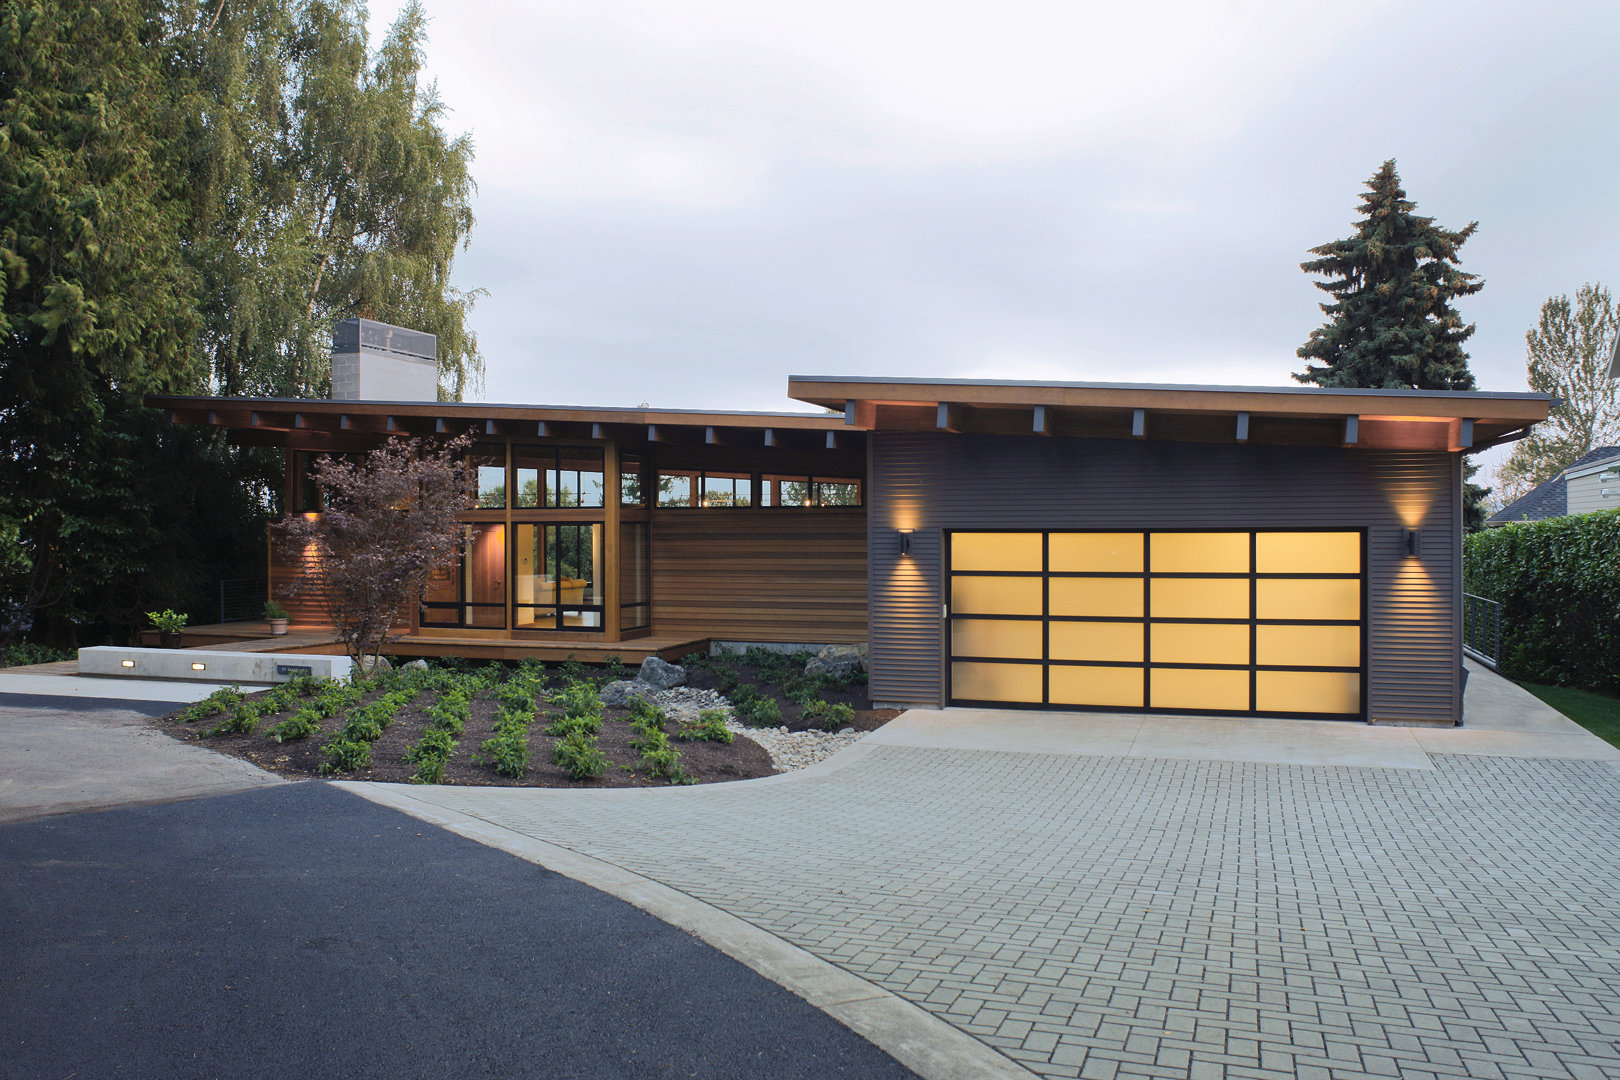 Driveway-with-pavers-that-have-a-dynamic-pattern-but-remain-subtle-